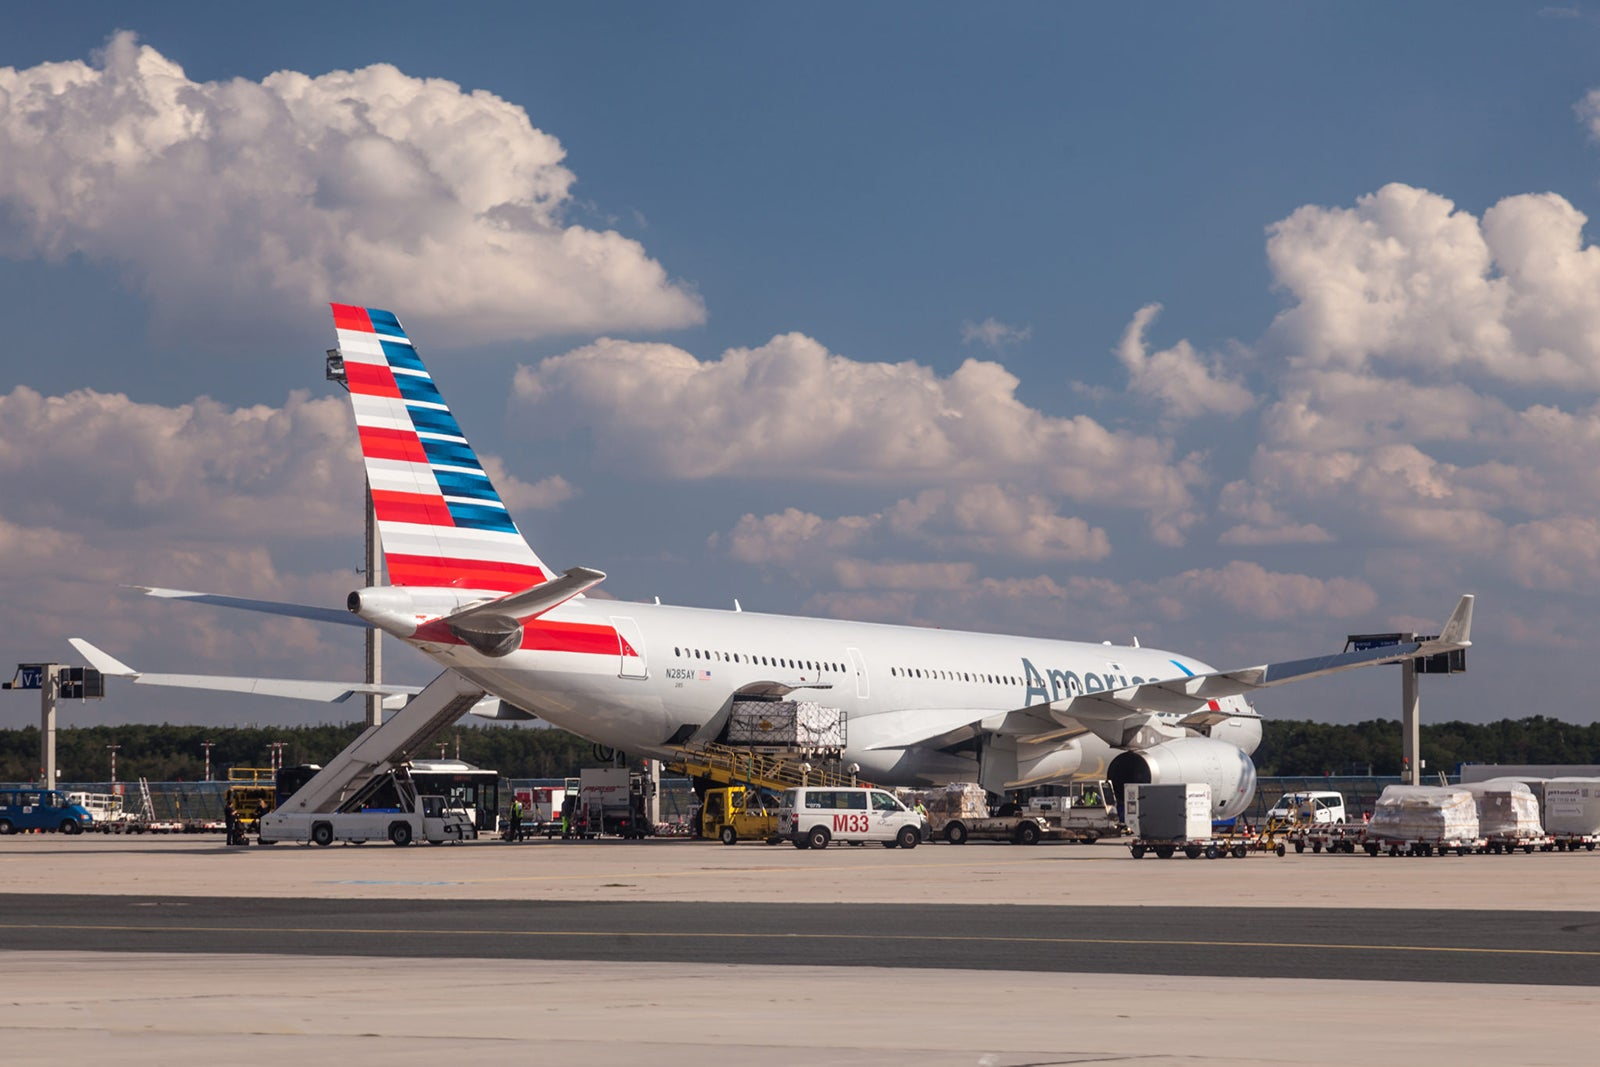 Earning American Airlines Elite Status On Partner Airlines Will Be Much Easier Thanks to Positive Changes It Announced to Partner Earning Rates. Increasing as Much as 100% in Many Cases